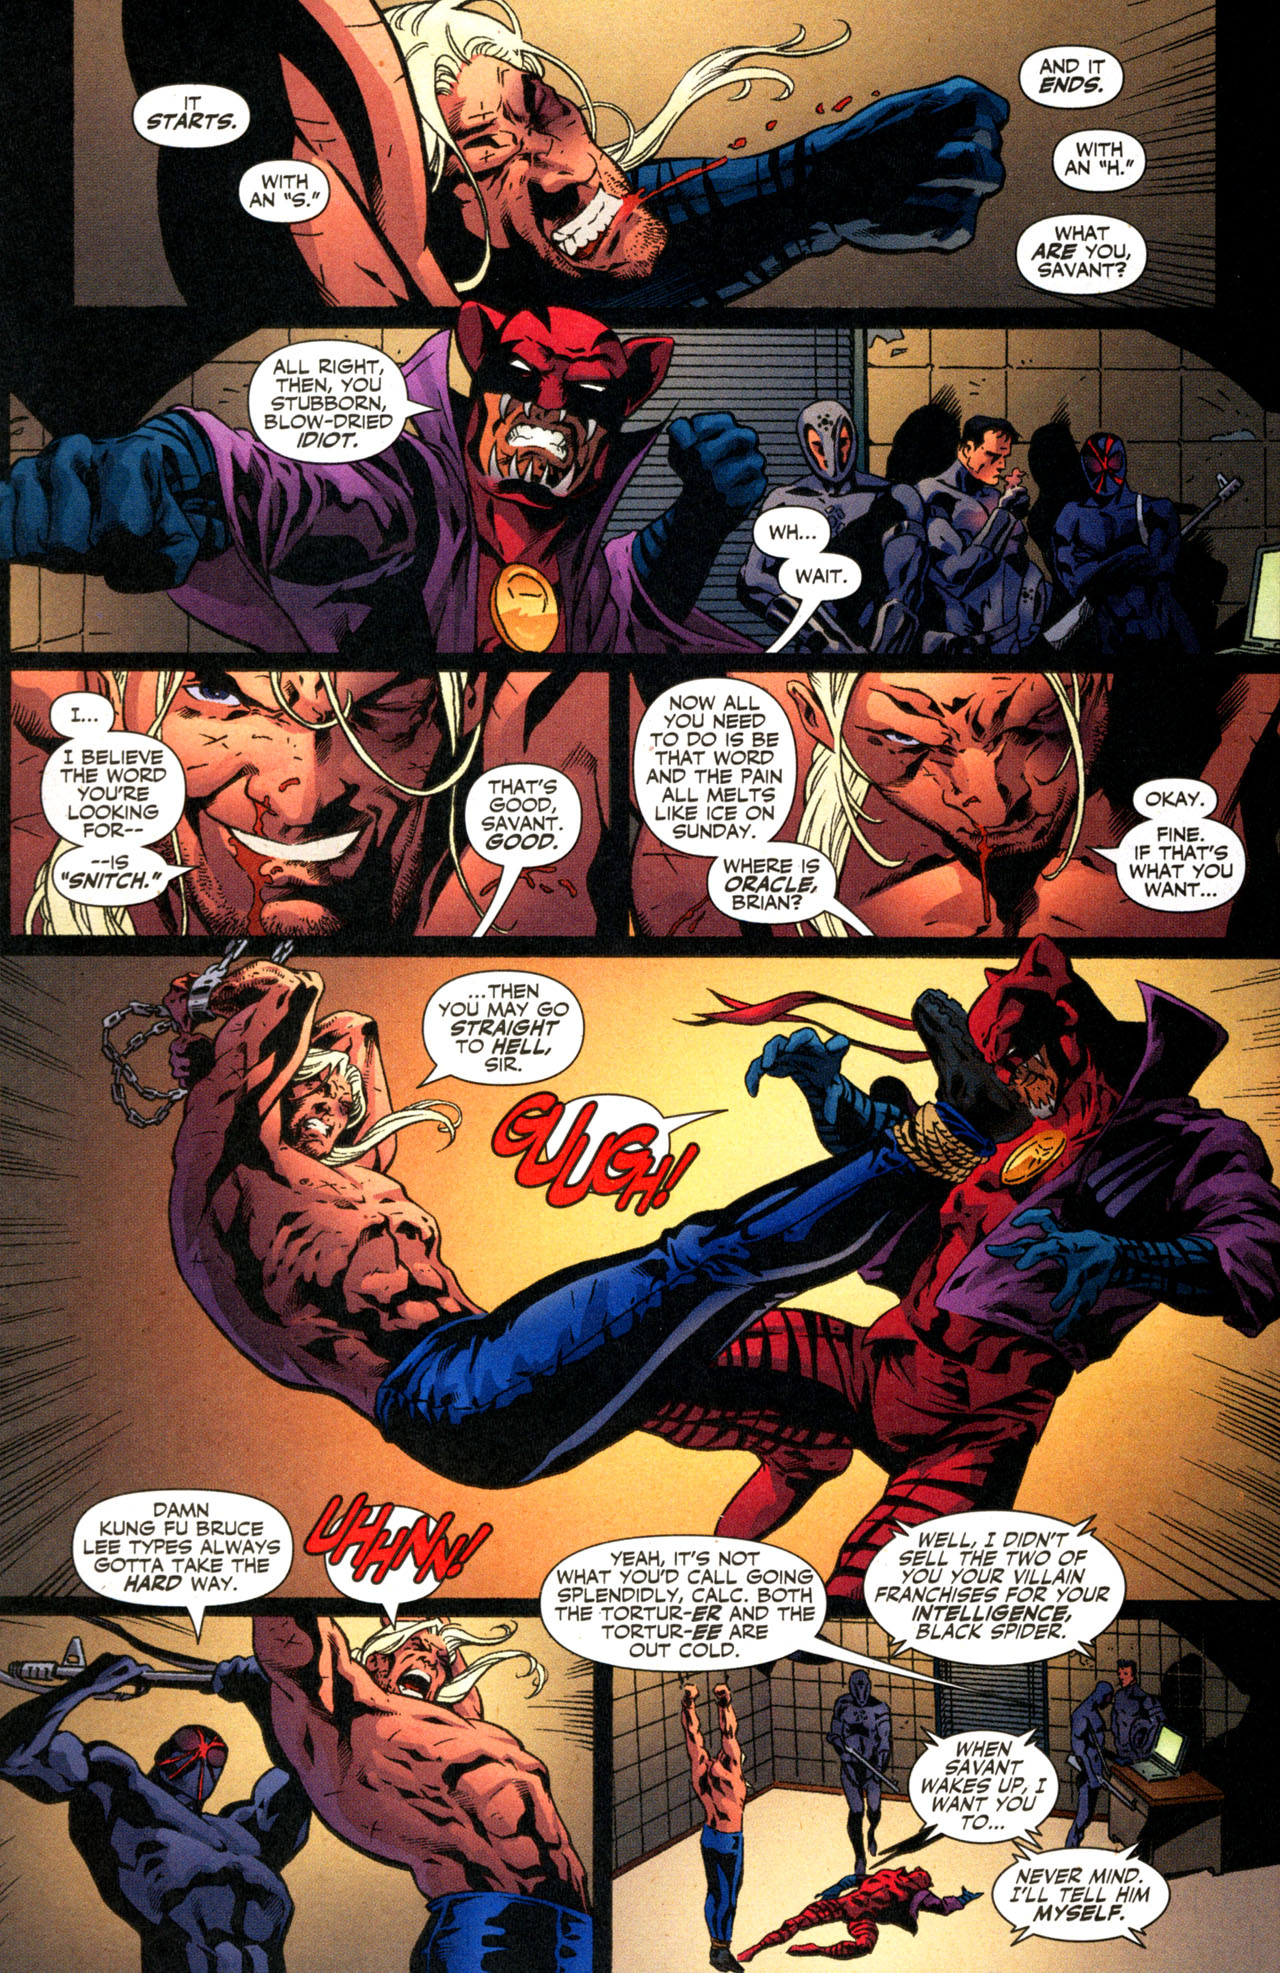 birds_of_prey_088_page_09_savant_hellhound.jpg